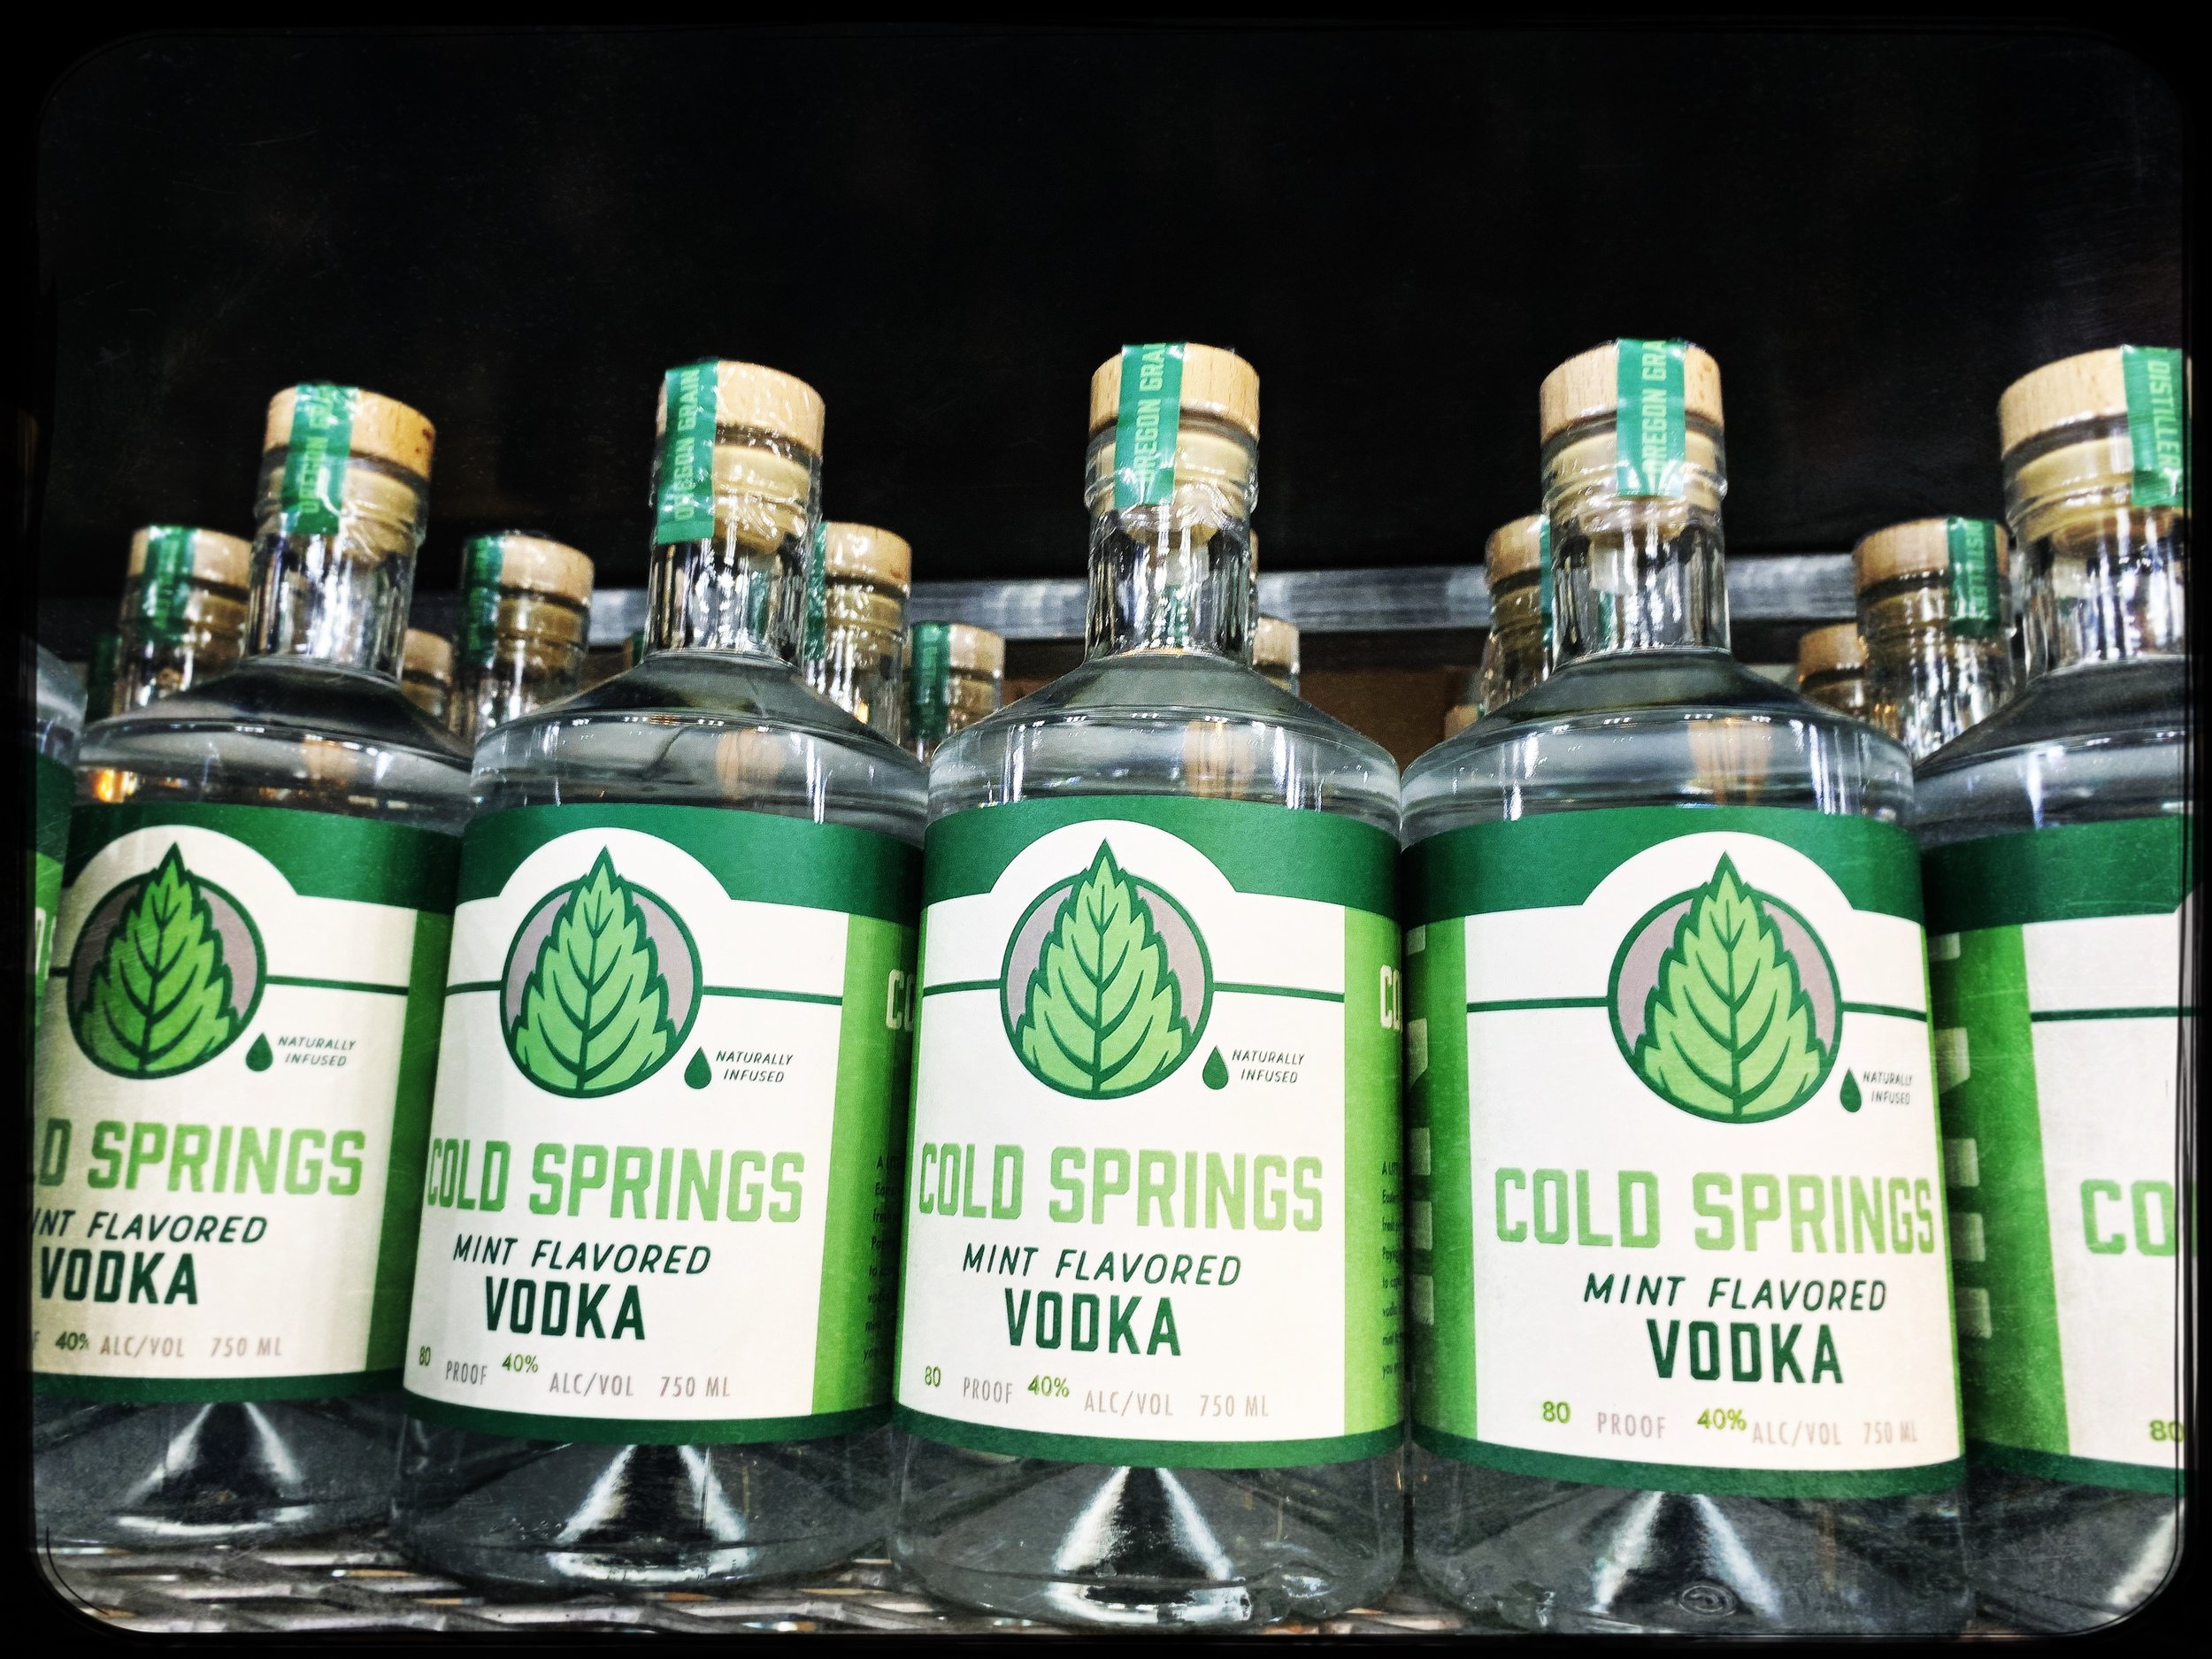 Cold Springs mint vodka made with mint from Mills mint grown near cold springs reservoir